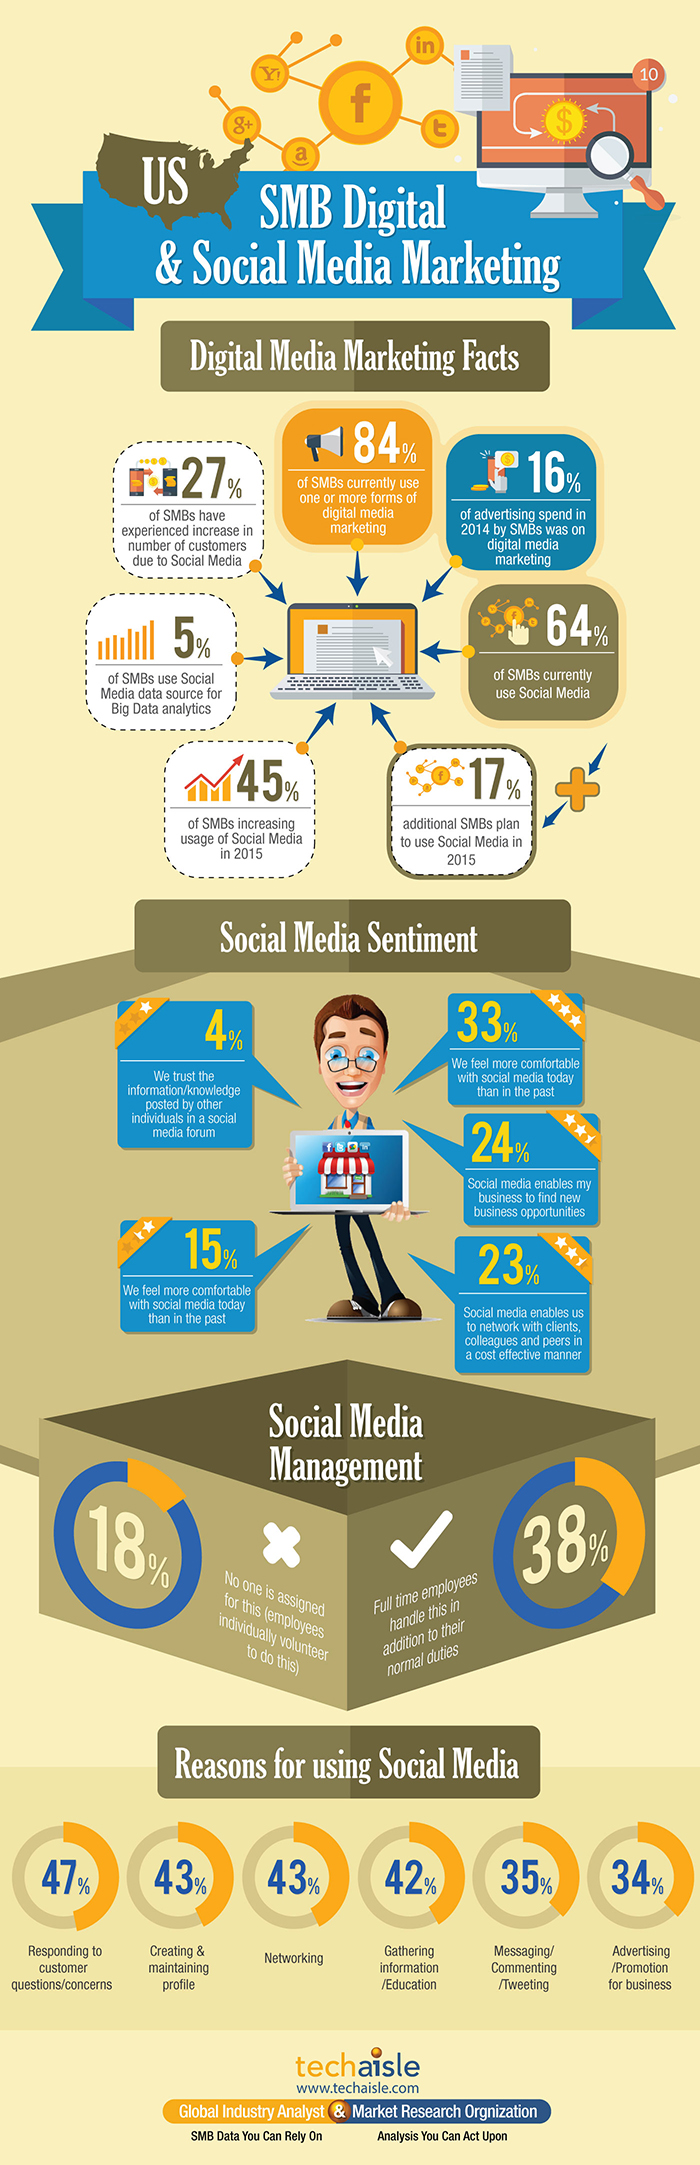 us-smb-digital-marketing-social-media-usage-techaisle-infographics